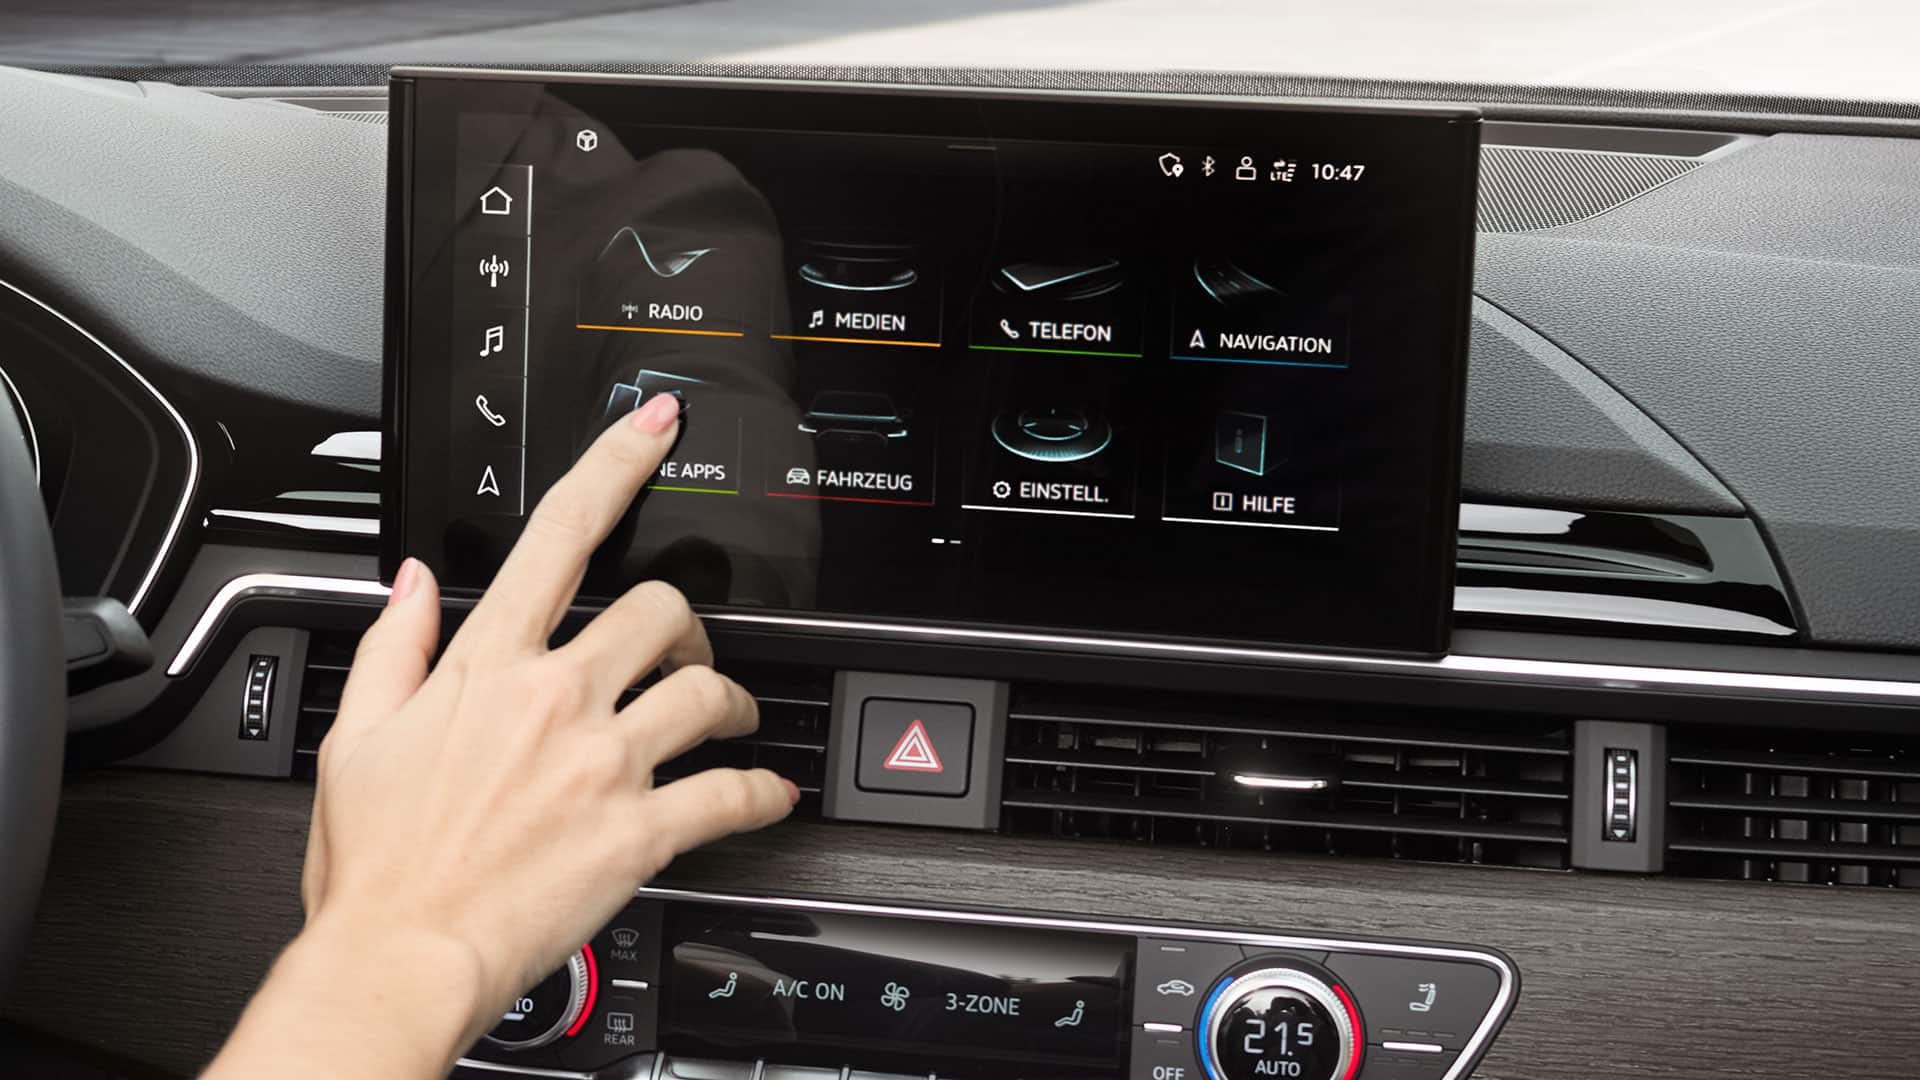 MMI touch-Display im Audi A5 Cabriolet